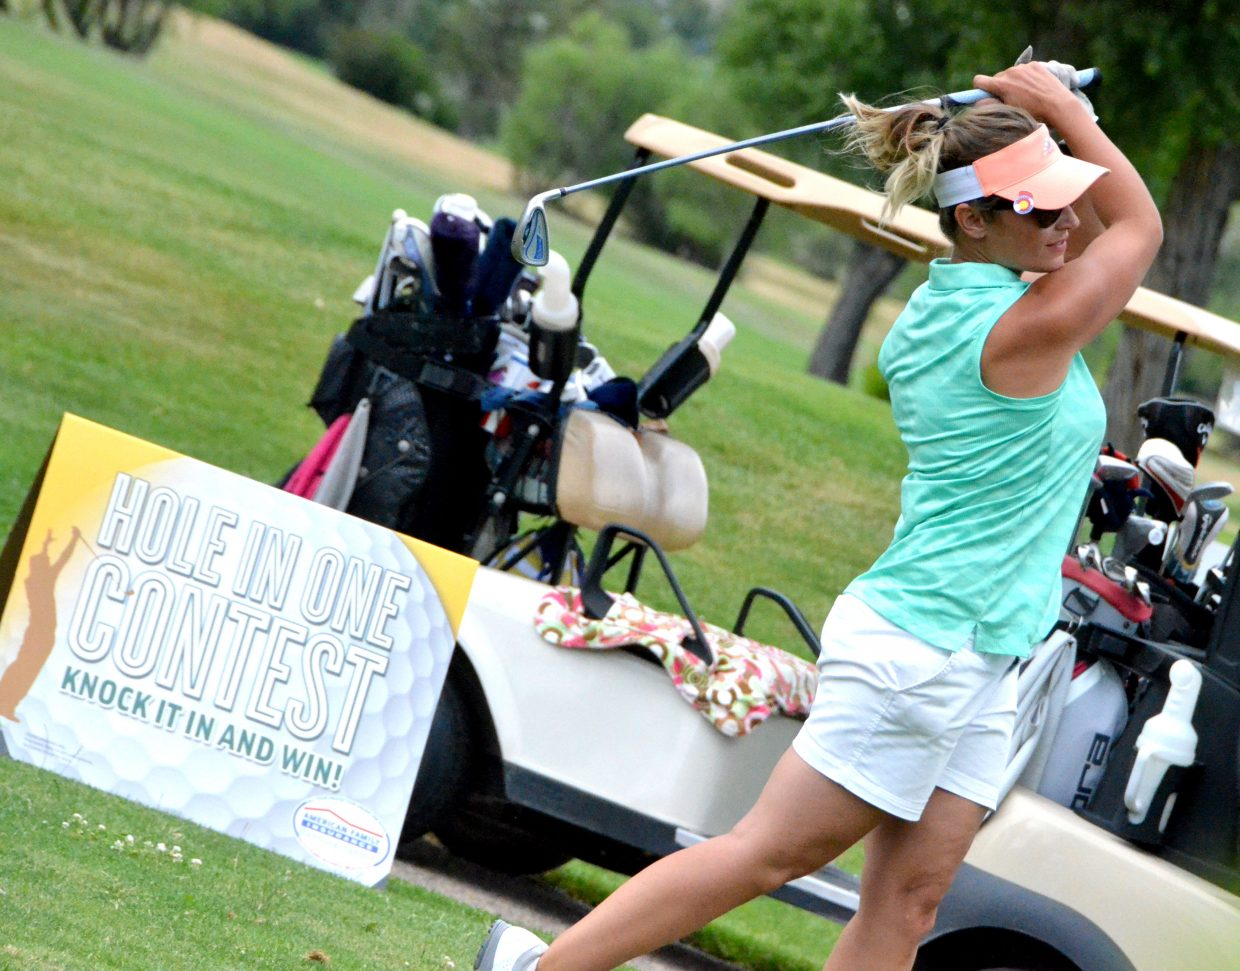 Silver Bullet ladies golf tourney shoots July 13, 14